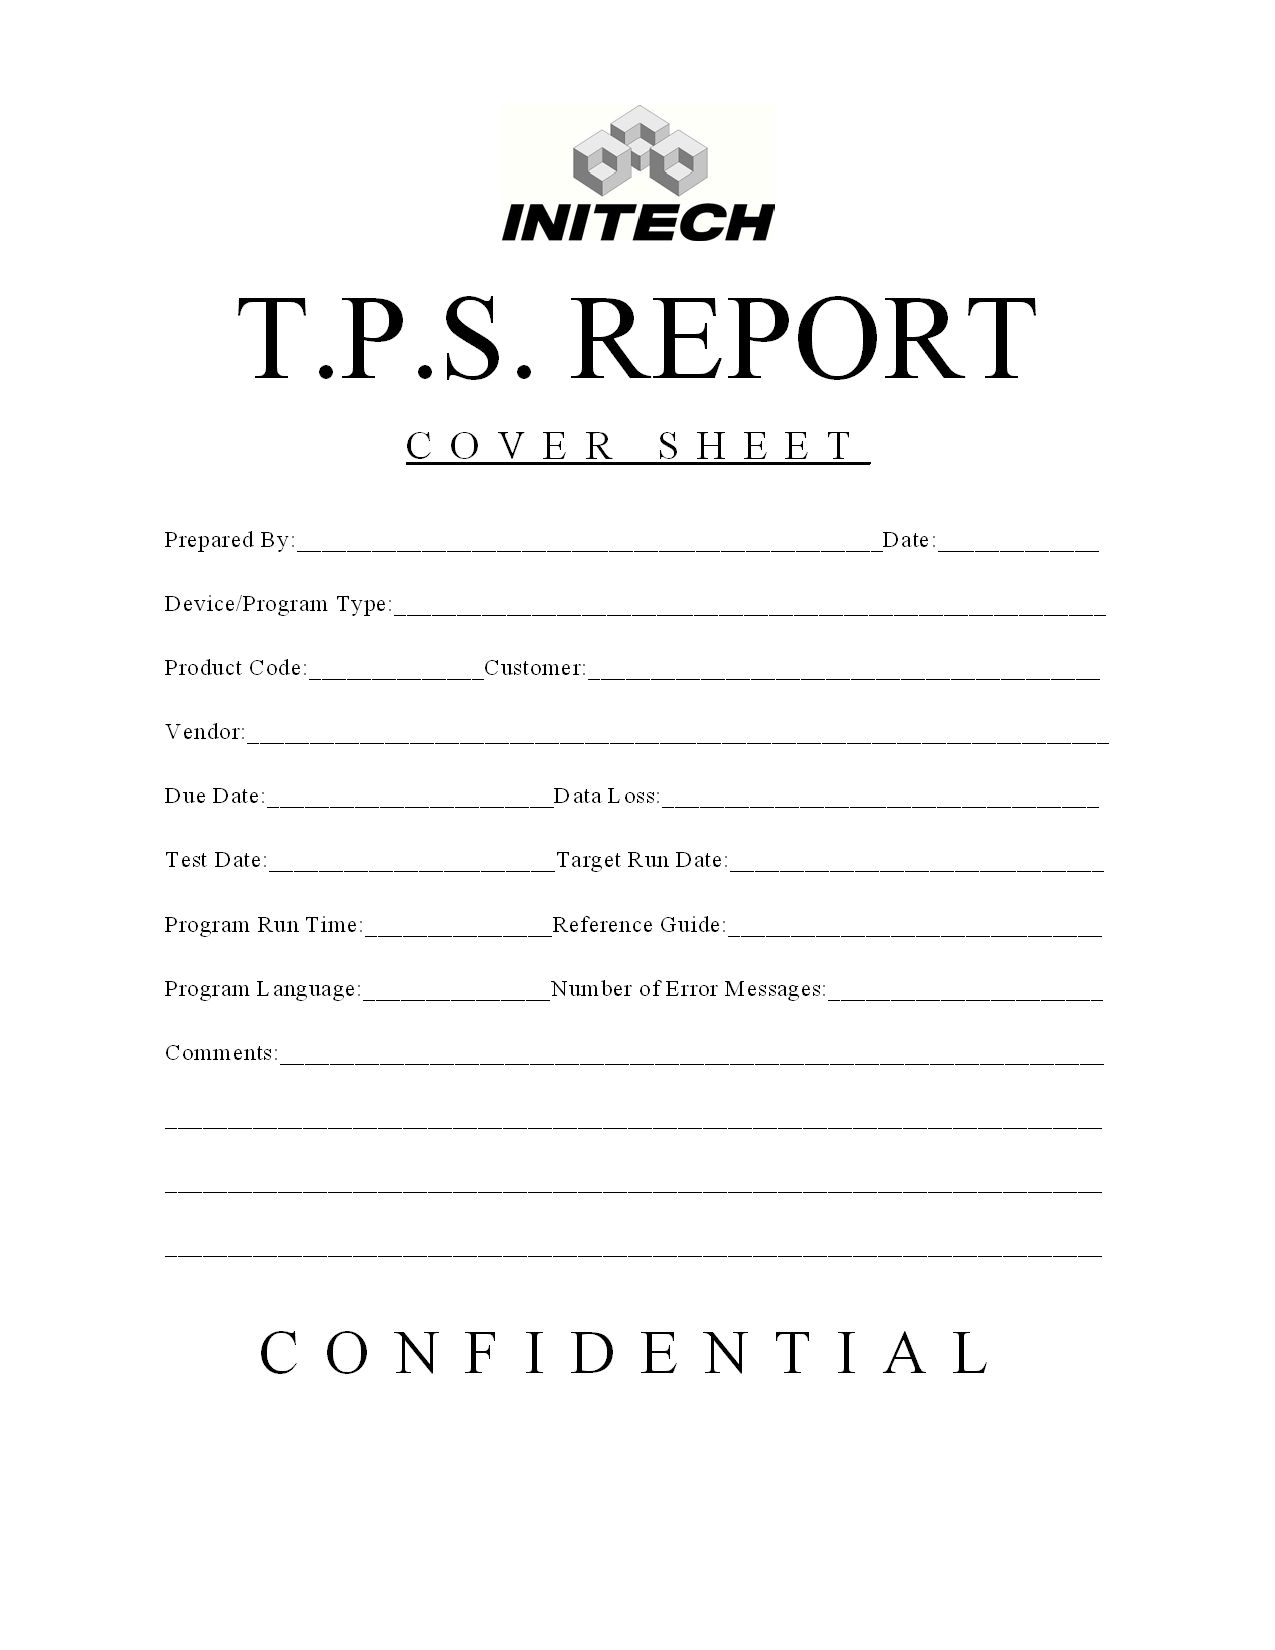 Office space tps report quote - Tps Report Mmm Did Ya Get The Memo Office Spacesneed